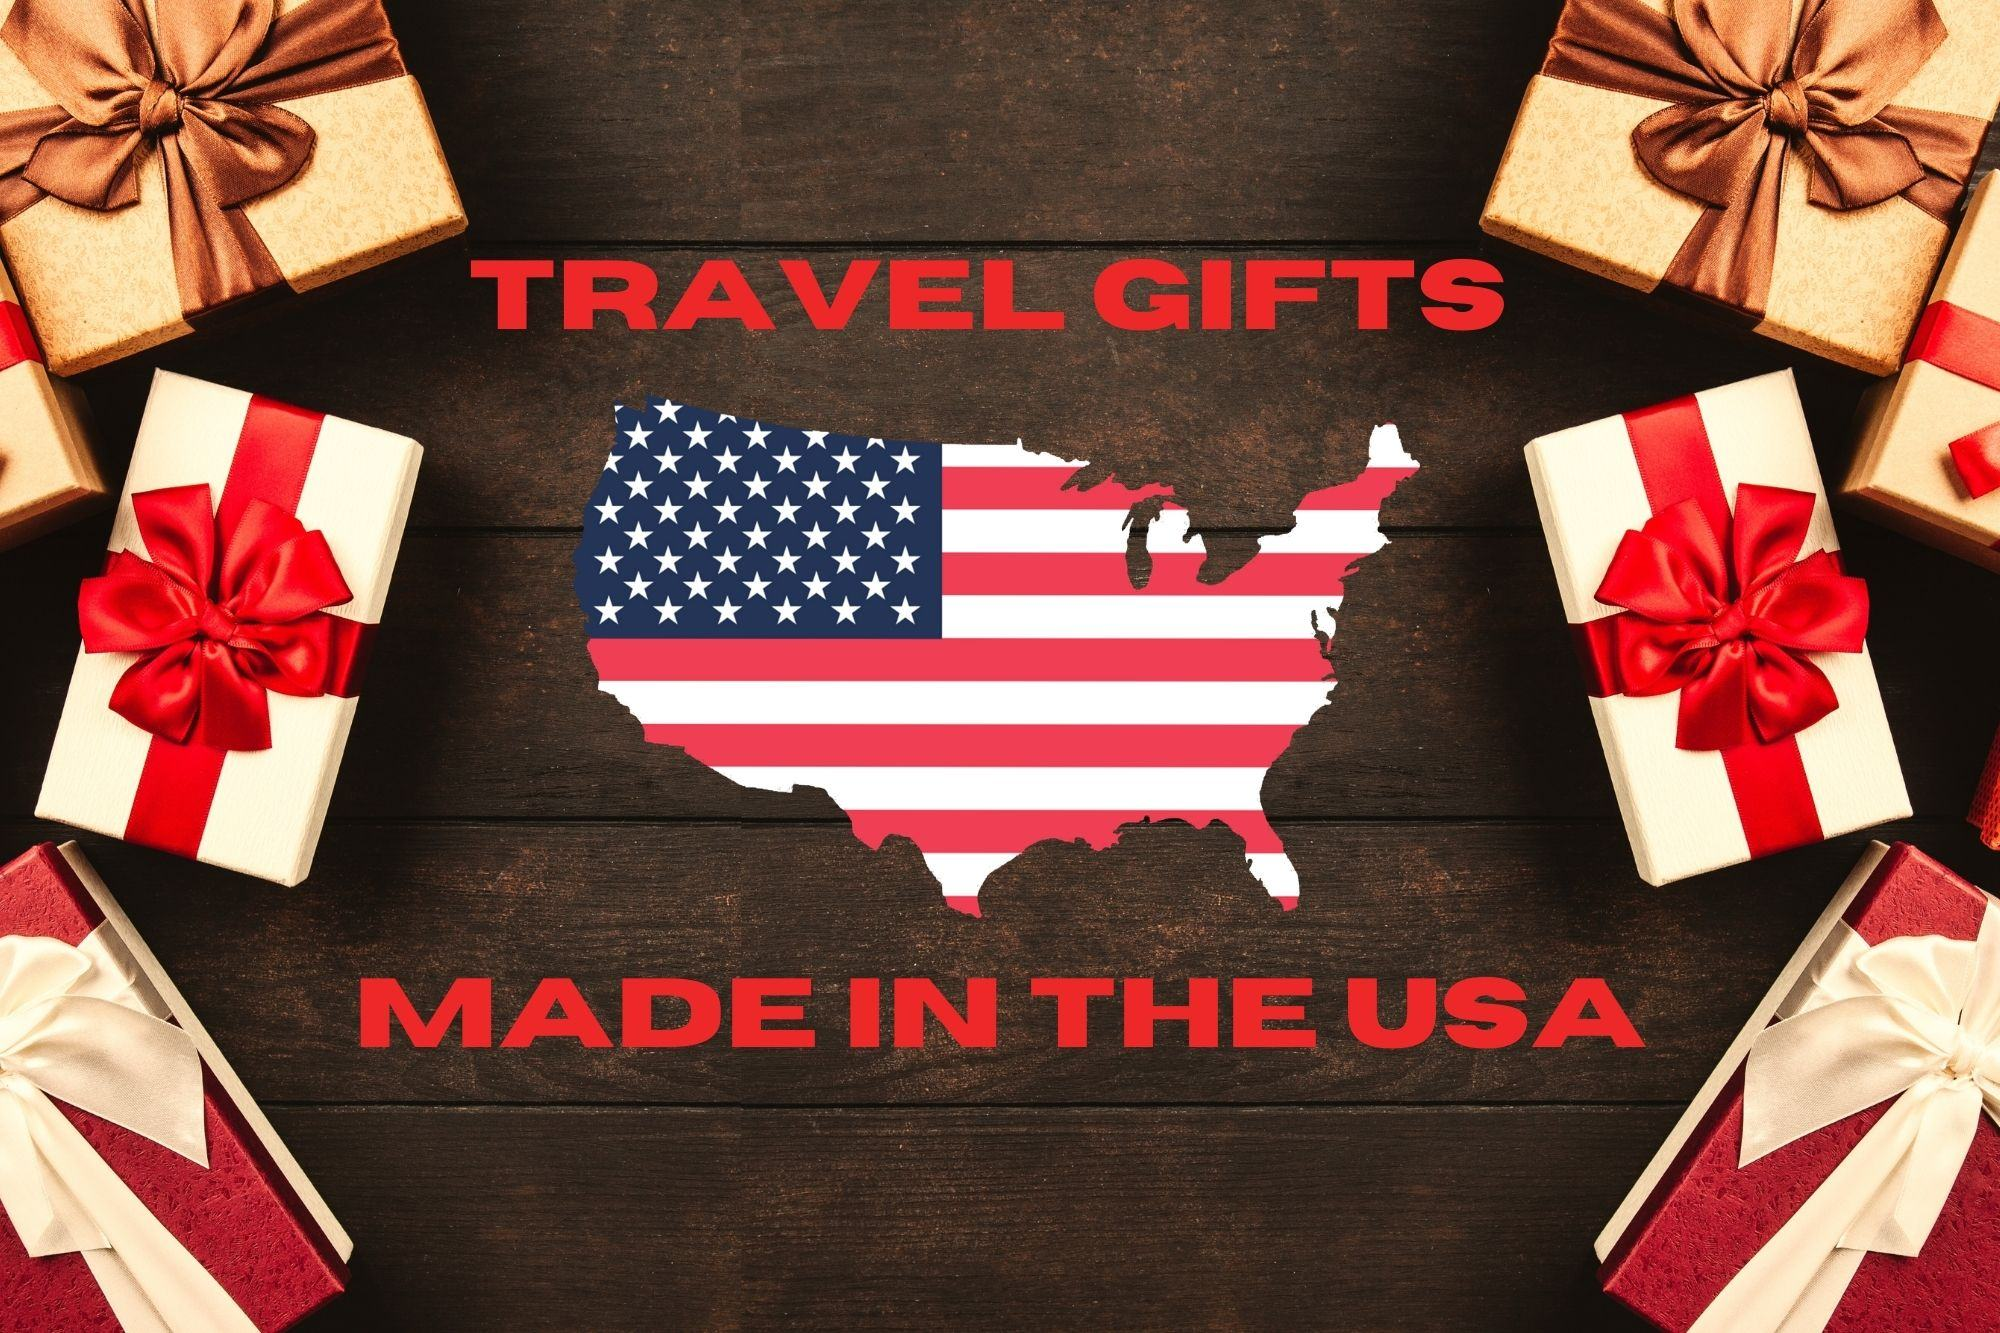 made in the usa gifts for travelers travel products made in america